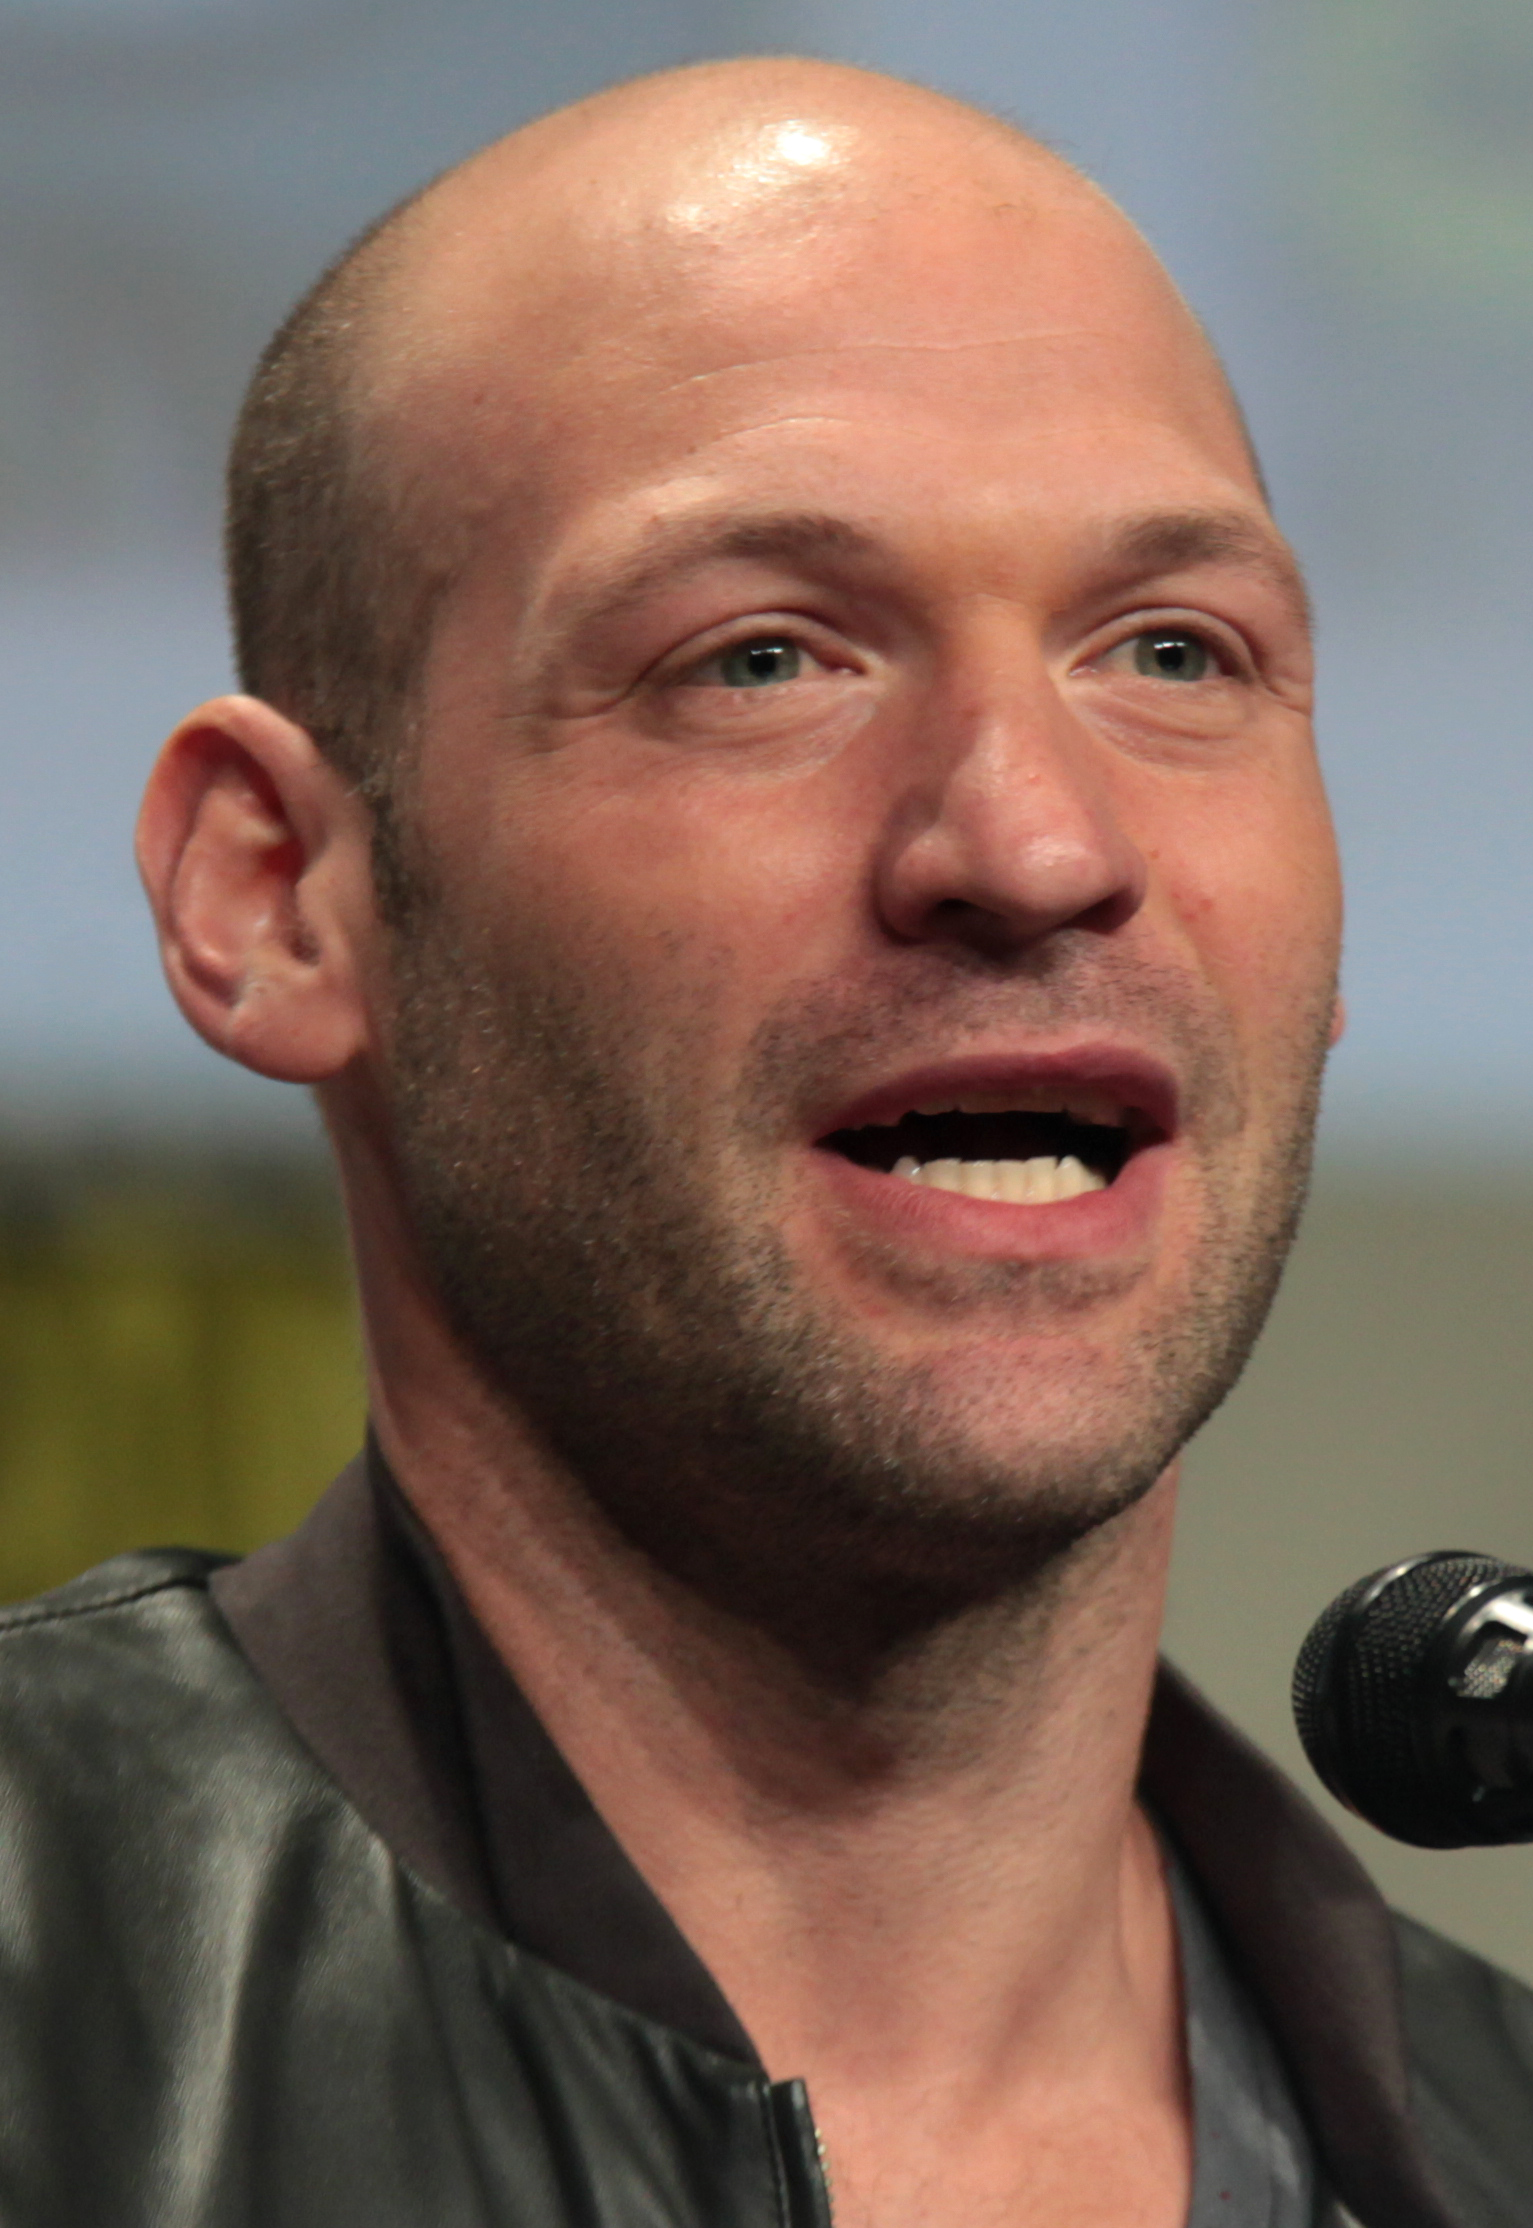 corey stoll charmedcorey stoll wife, corey stoll net worth, corey stoll black mass, corey stoll gold, corey stoll ernest hemingway, corey stoll charmed, corey stoll hemingway, corey stoll height, corey stoll house of cards, corey stoll, corey stoll imdb, corey stoll the strain, corey stoll homeland, corey stoll twitter, corey stoll midnight in paris, corey stoll ant man, corey stoll non stop, corey stoll married, corey stoll wig, corey stoll movies and tv shows